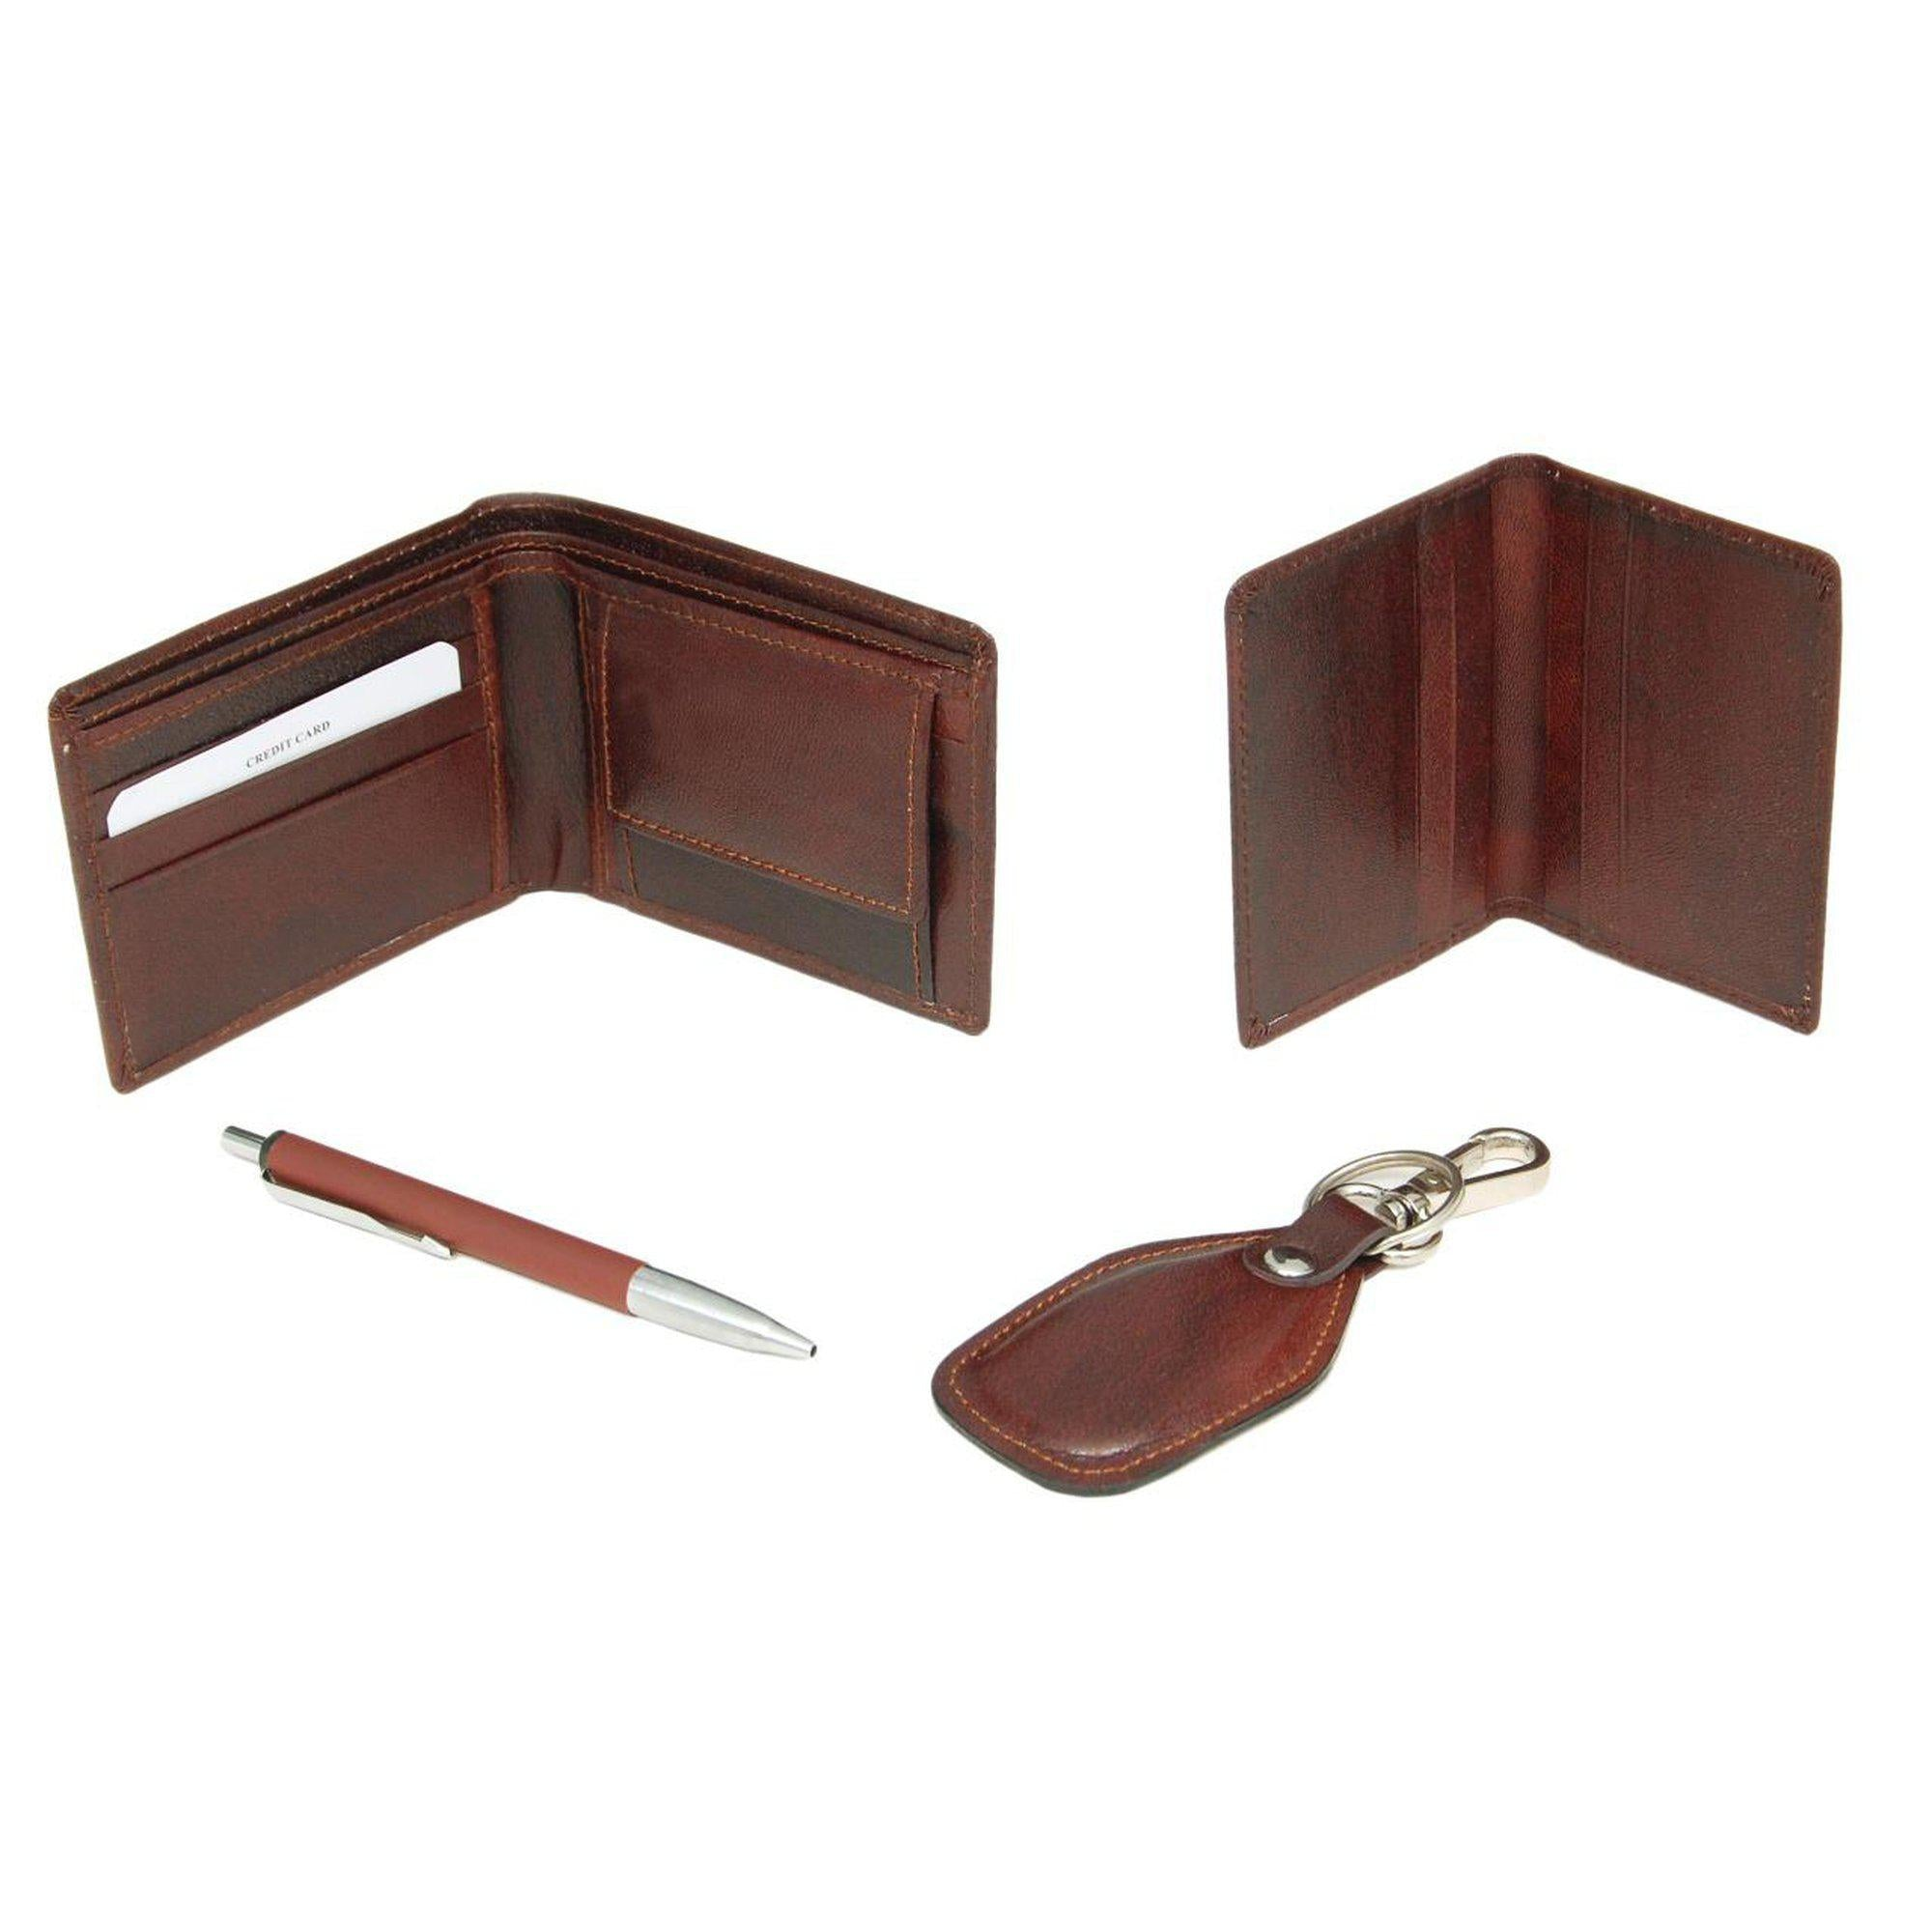 Leather Gifting Set for Men